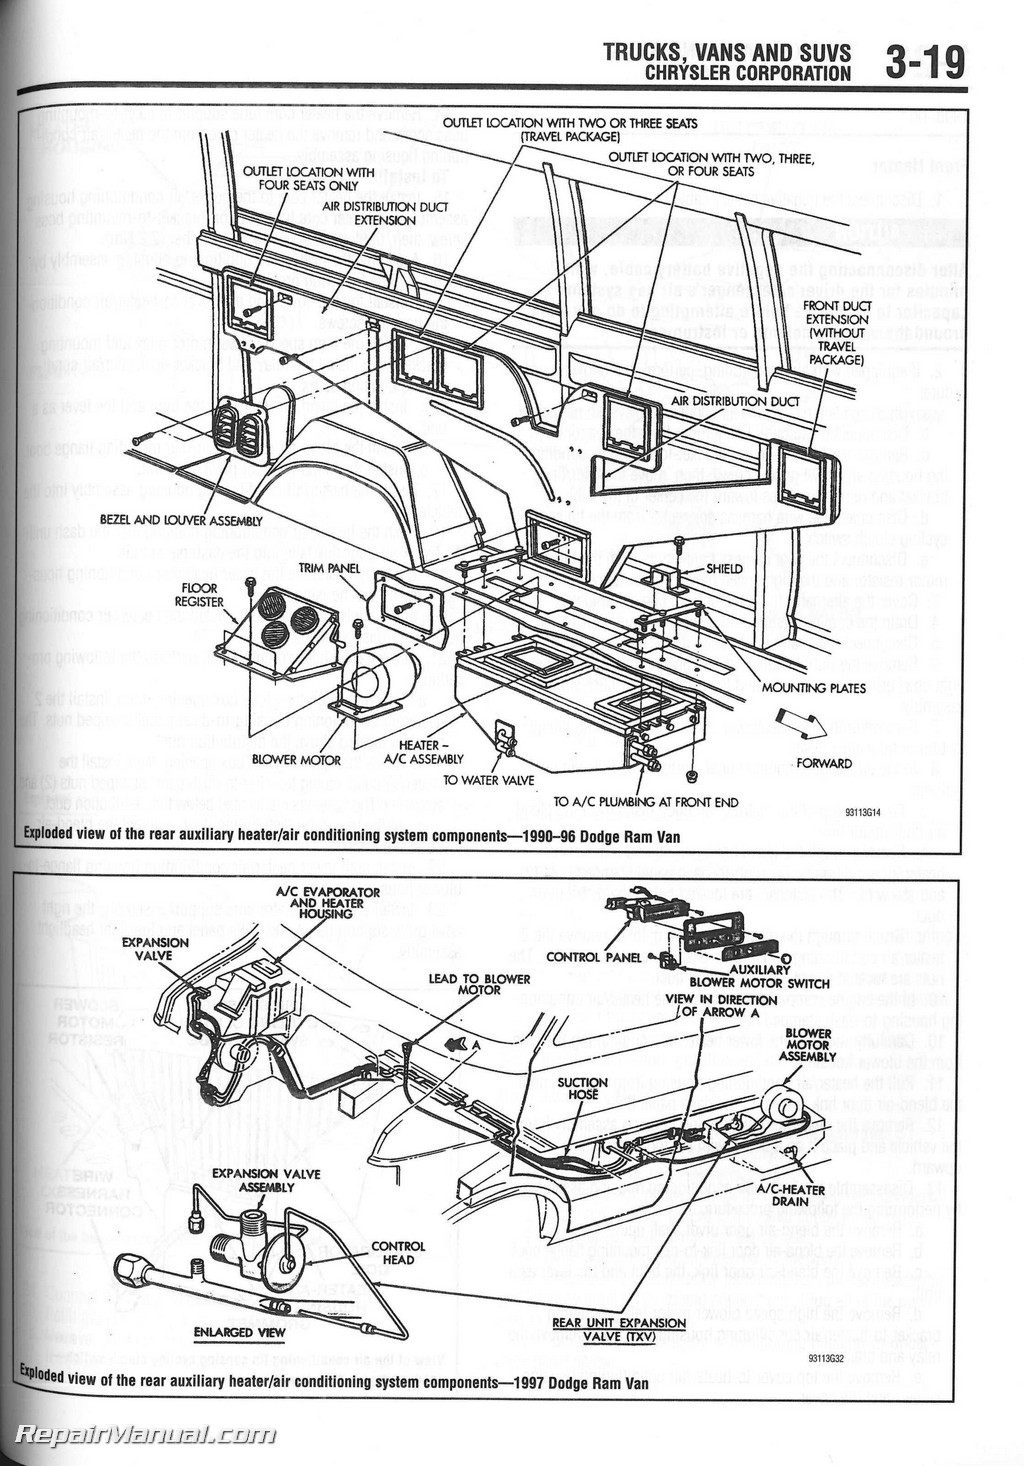 lawn tractor wiring diagram for honeywell thermostat rth2300 rth221 chilton 1990-2000 heater core installation manual